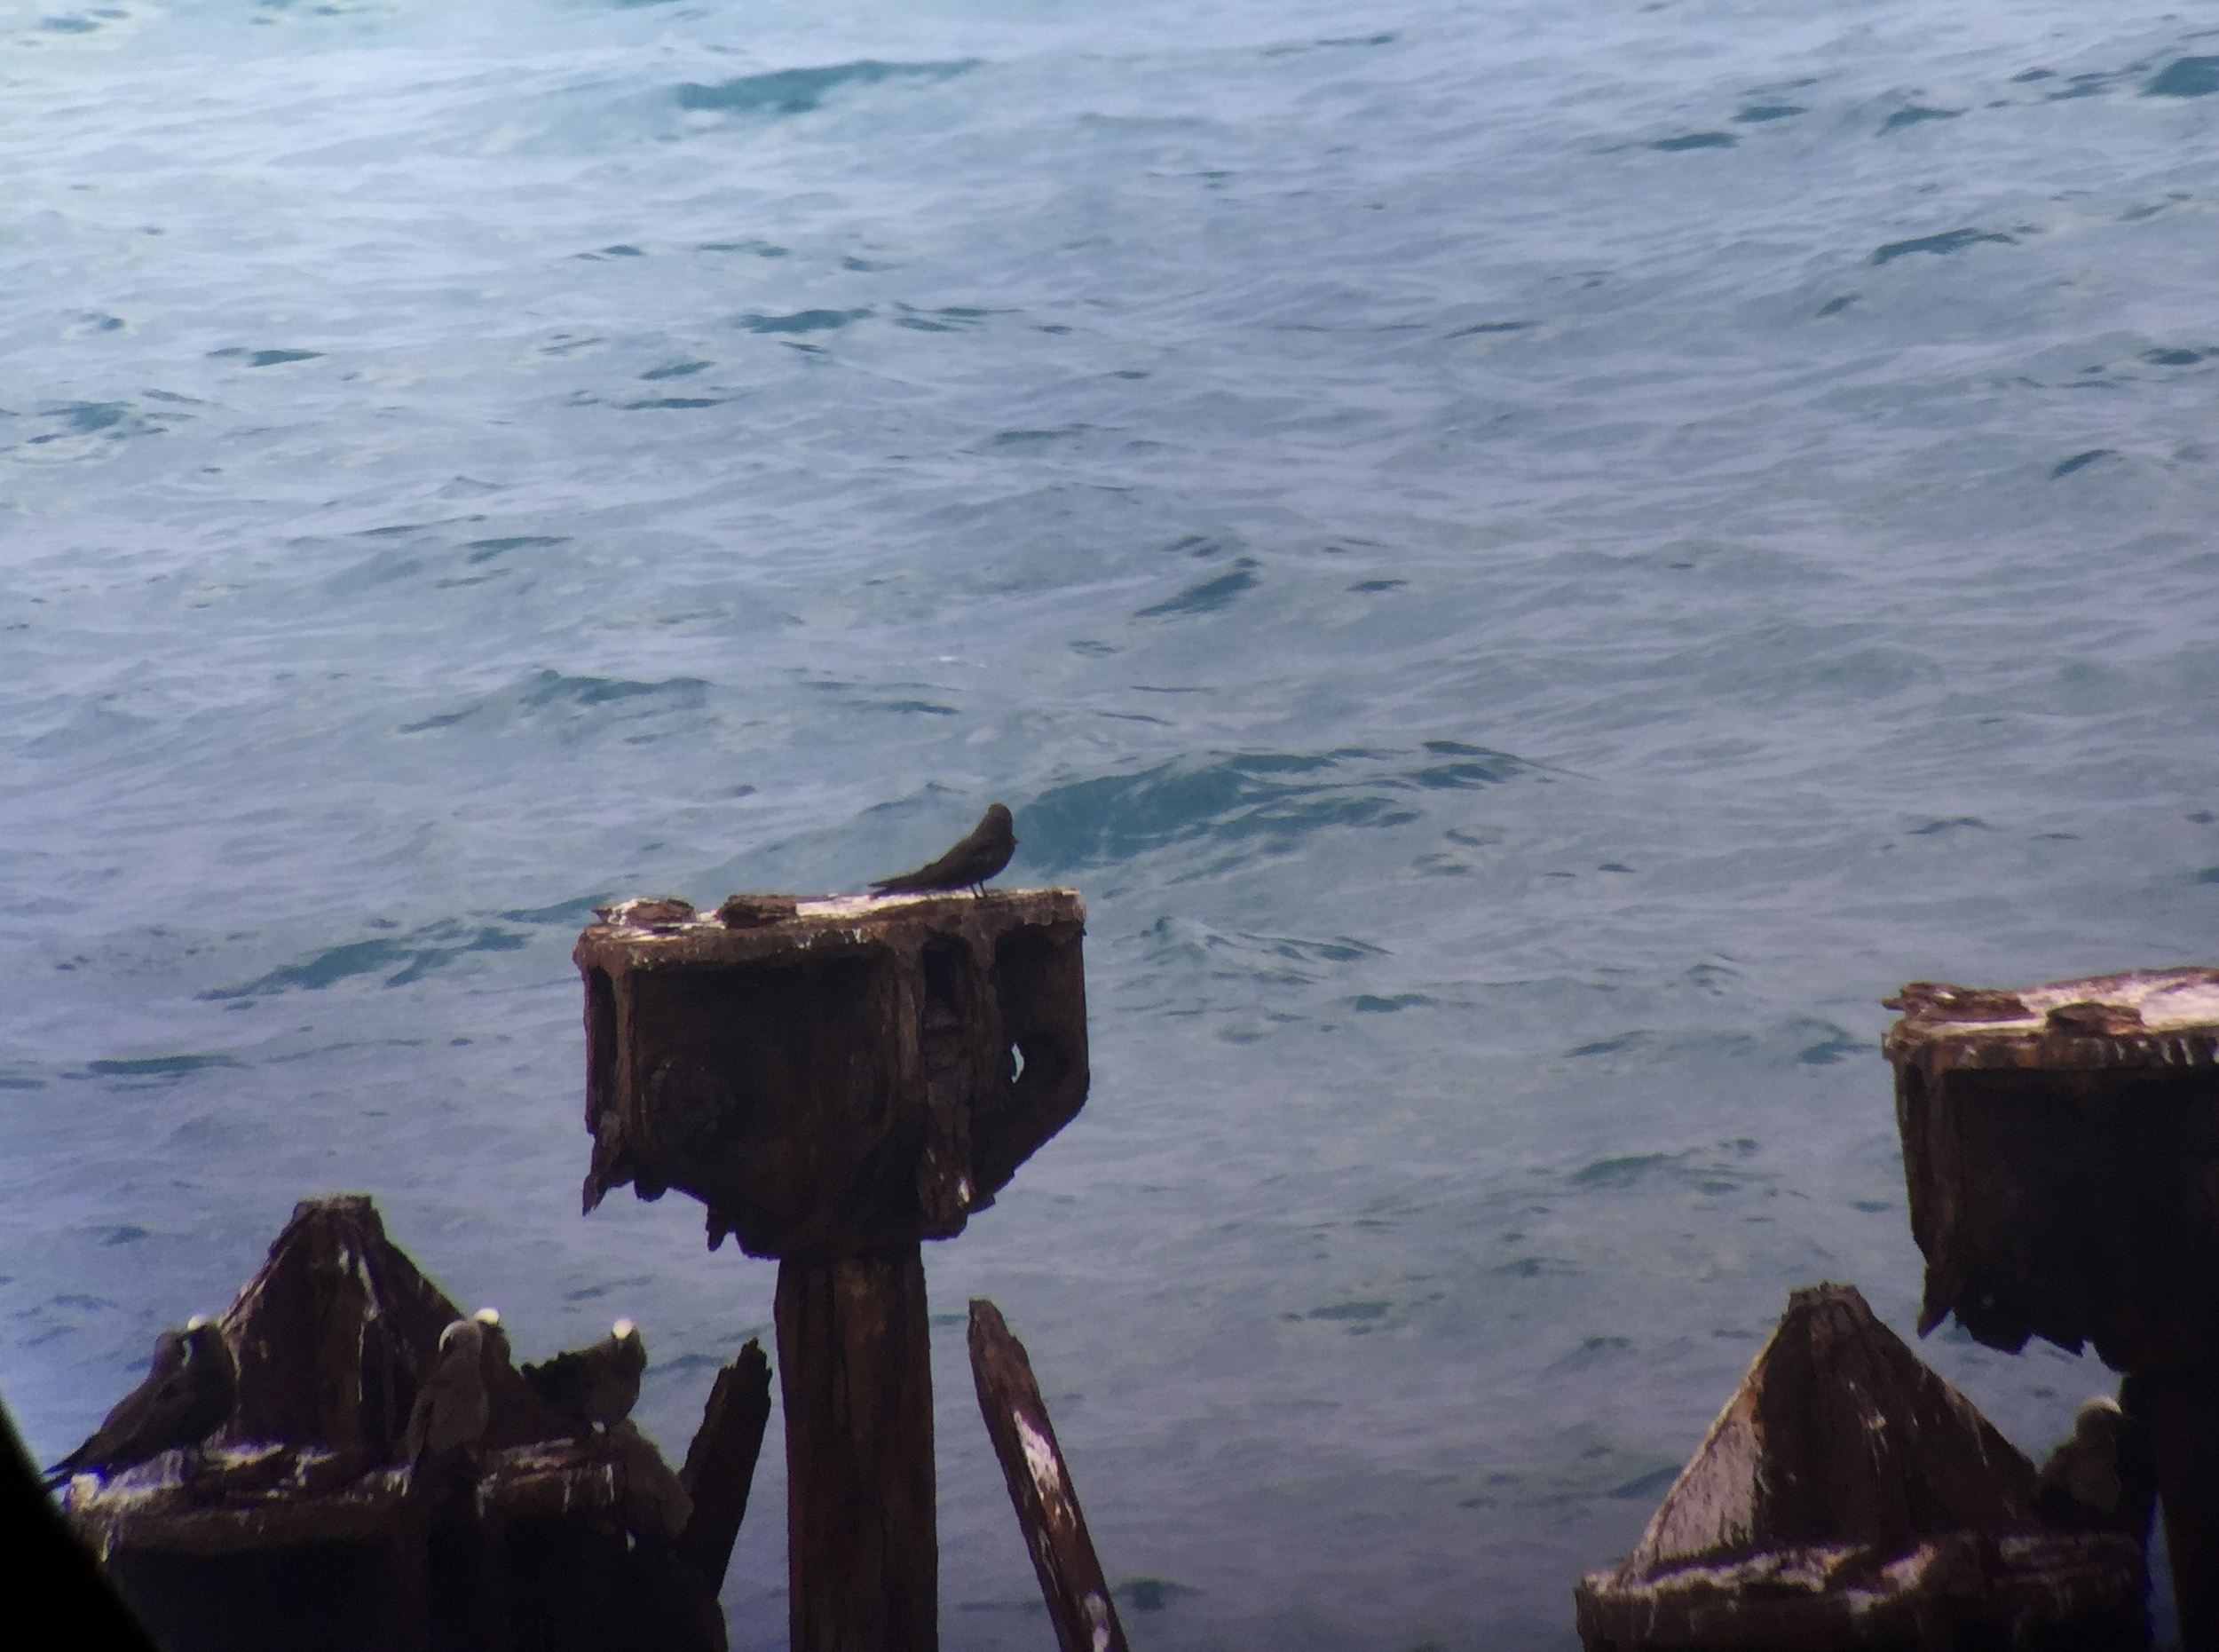 My first view of the Black Noddy, on the coaling docks of Fort Jefferson